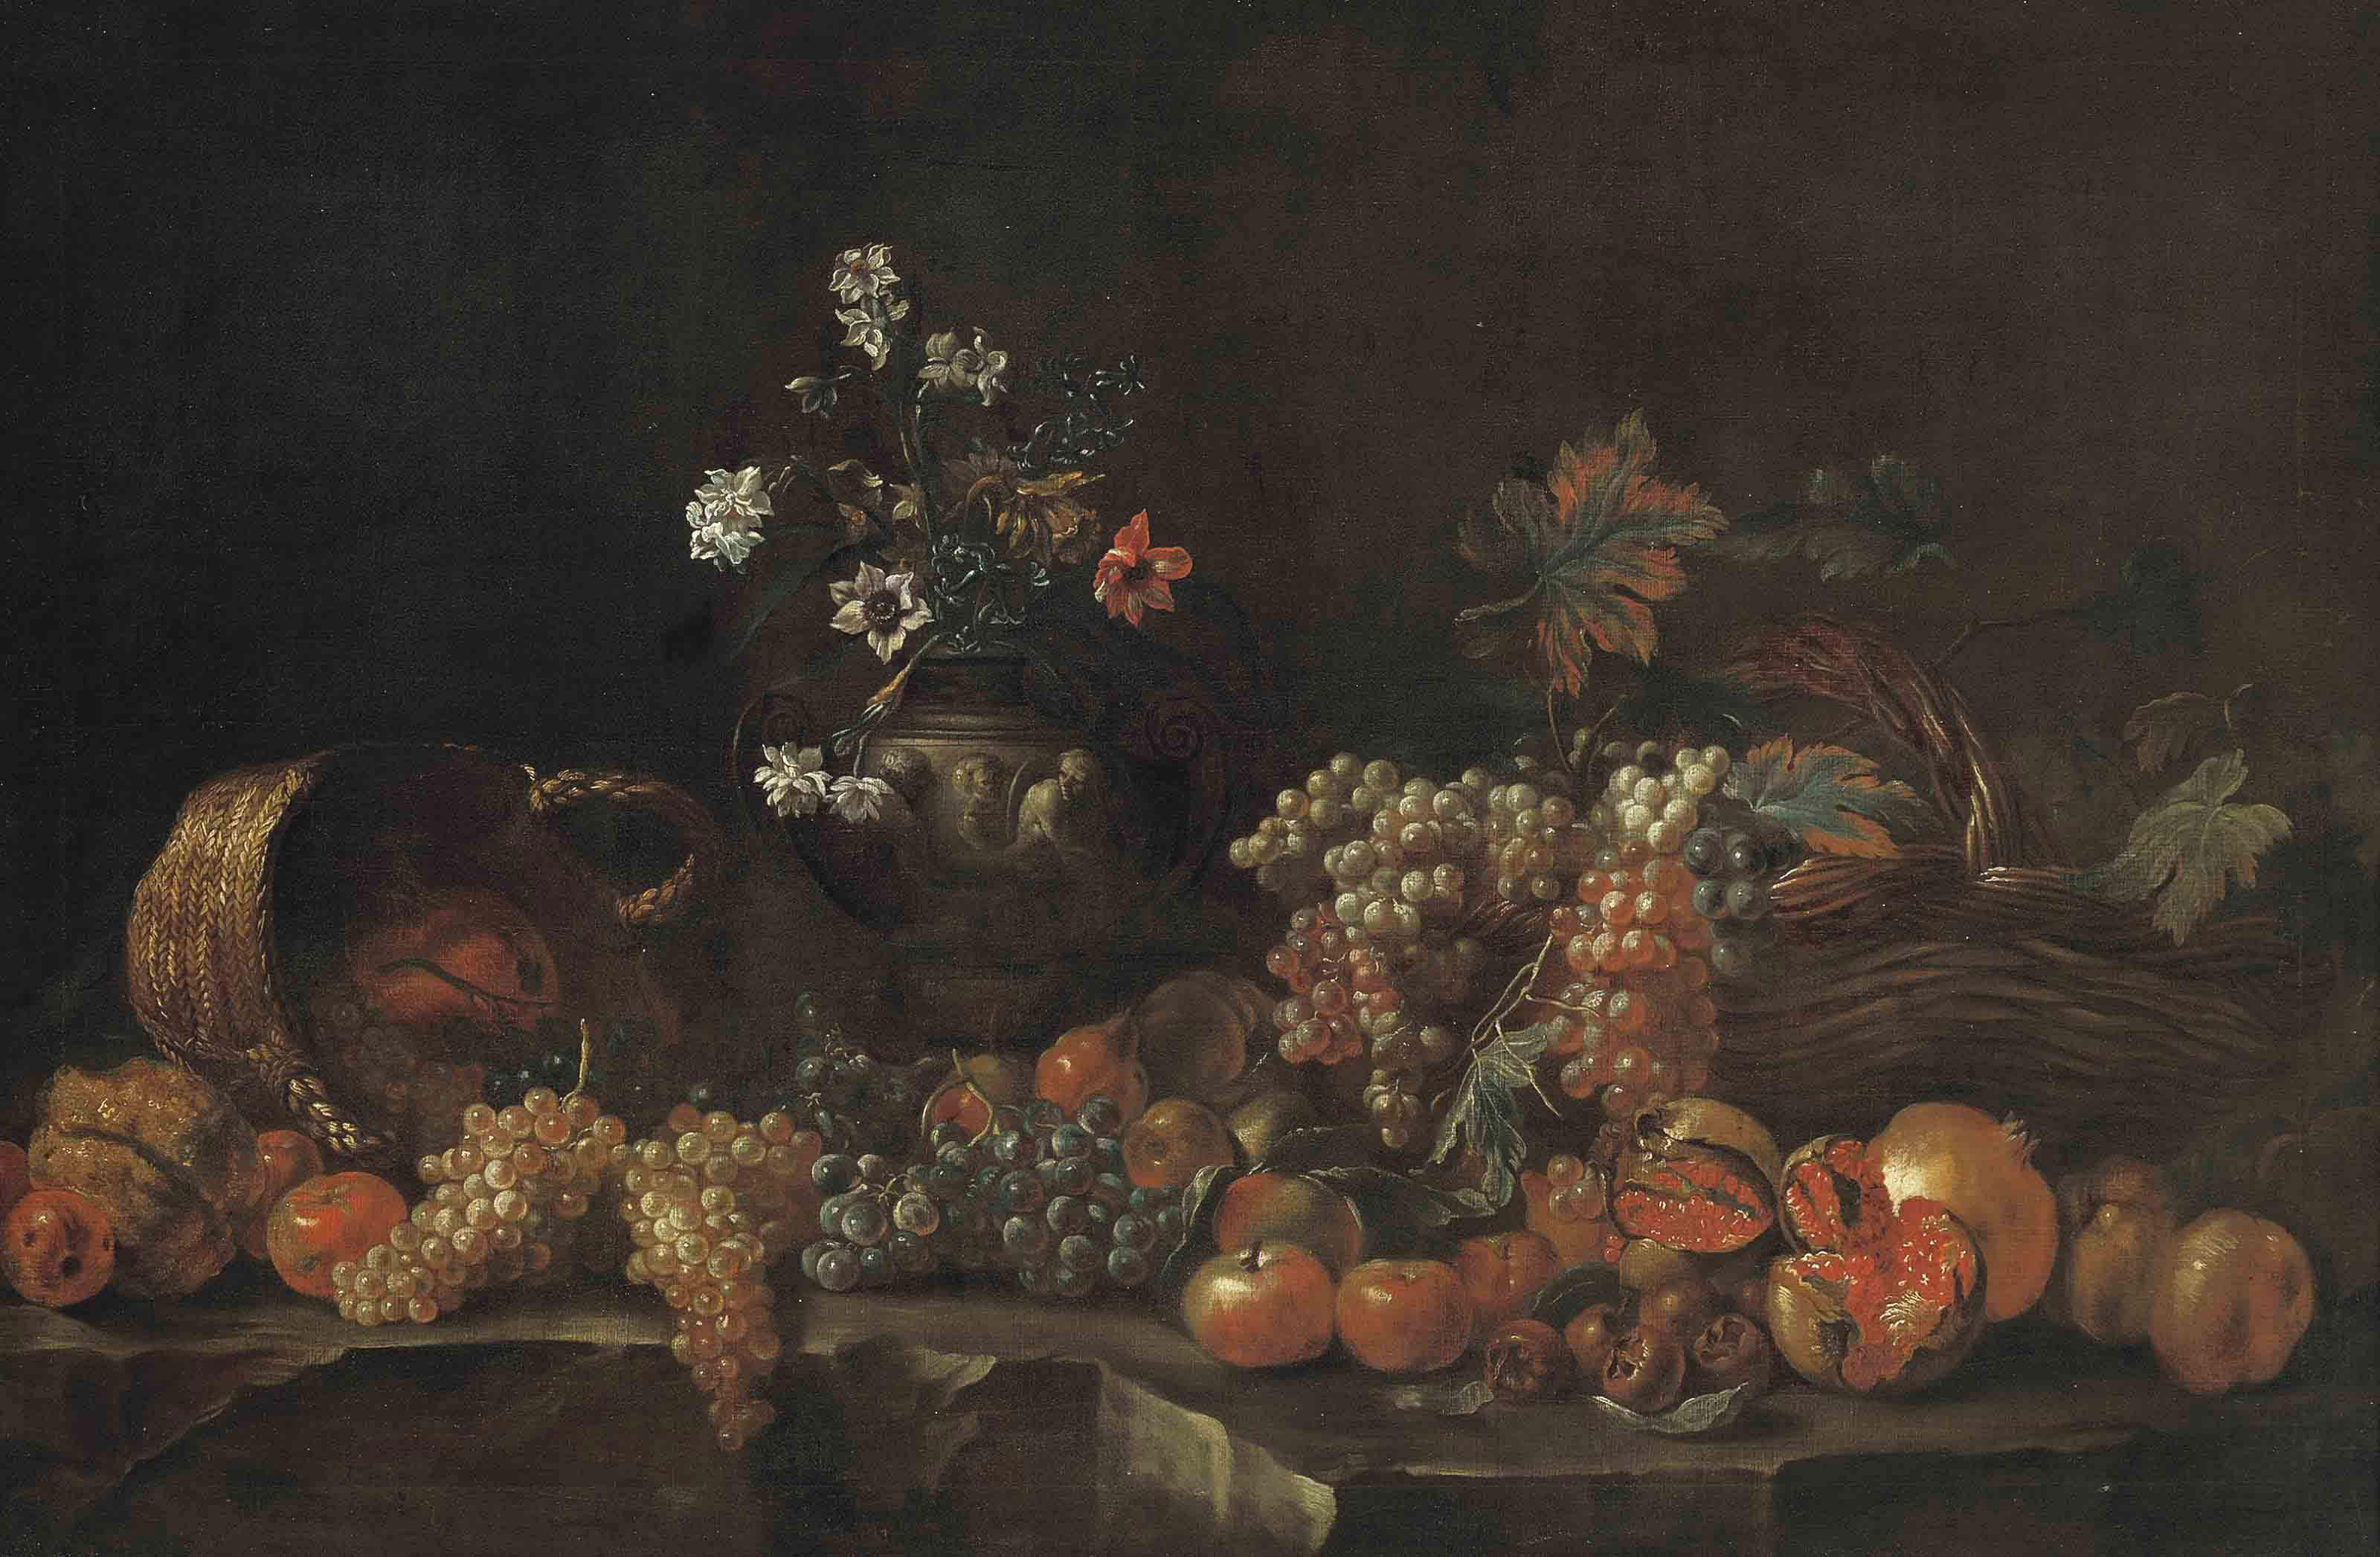 Grapes, pomegranates, apples, lemons, wicker baskets and a sculpted vase with flowers on a ledge